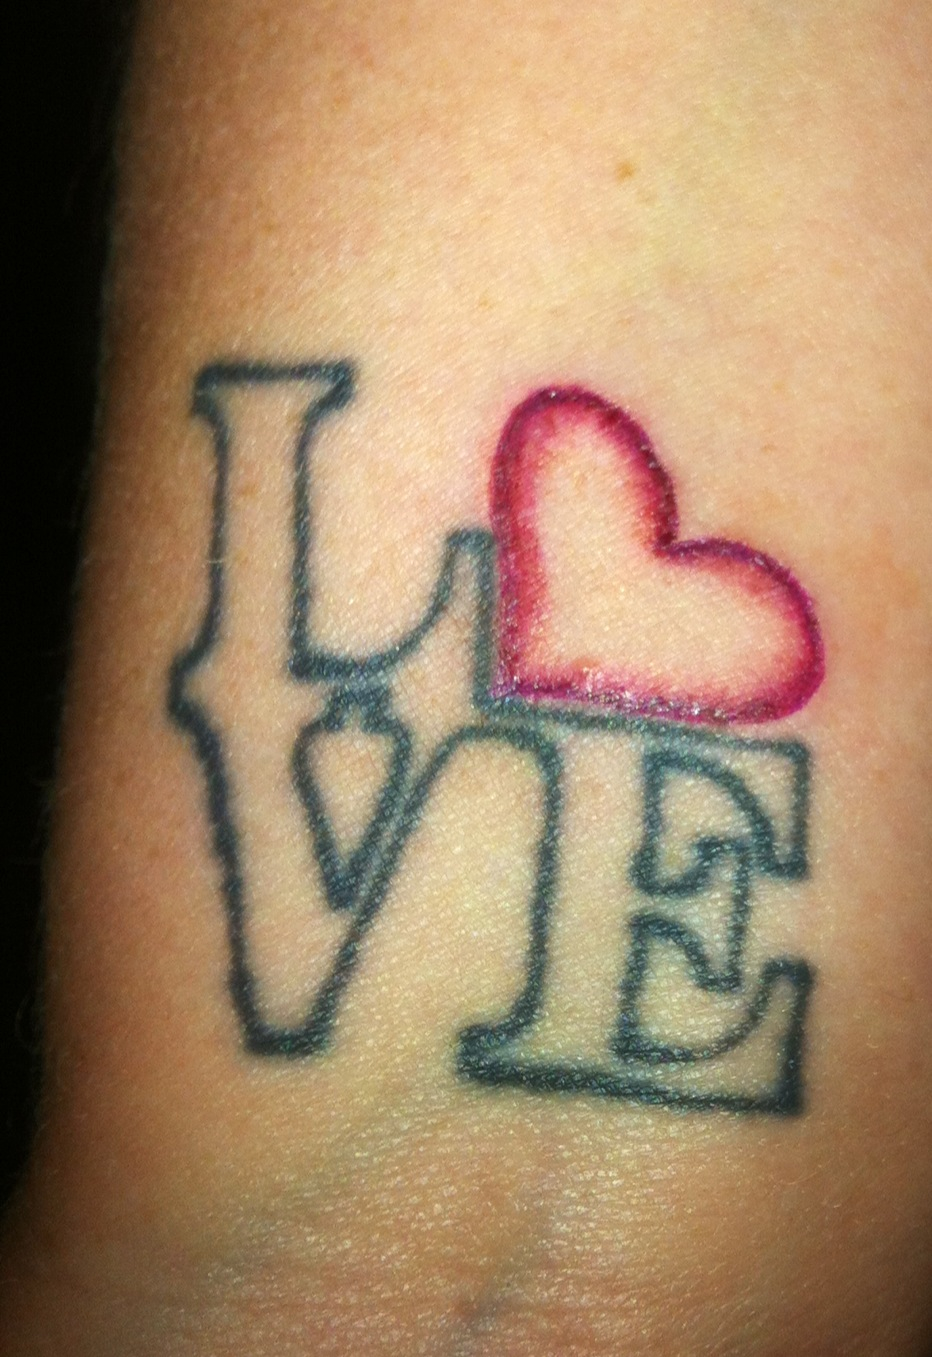 Tattoo Ideas About Love